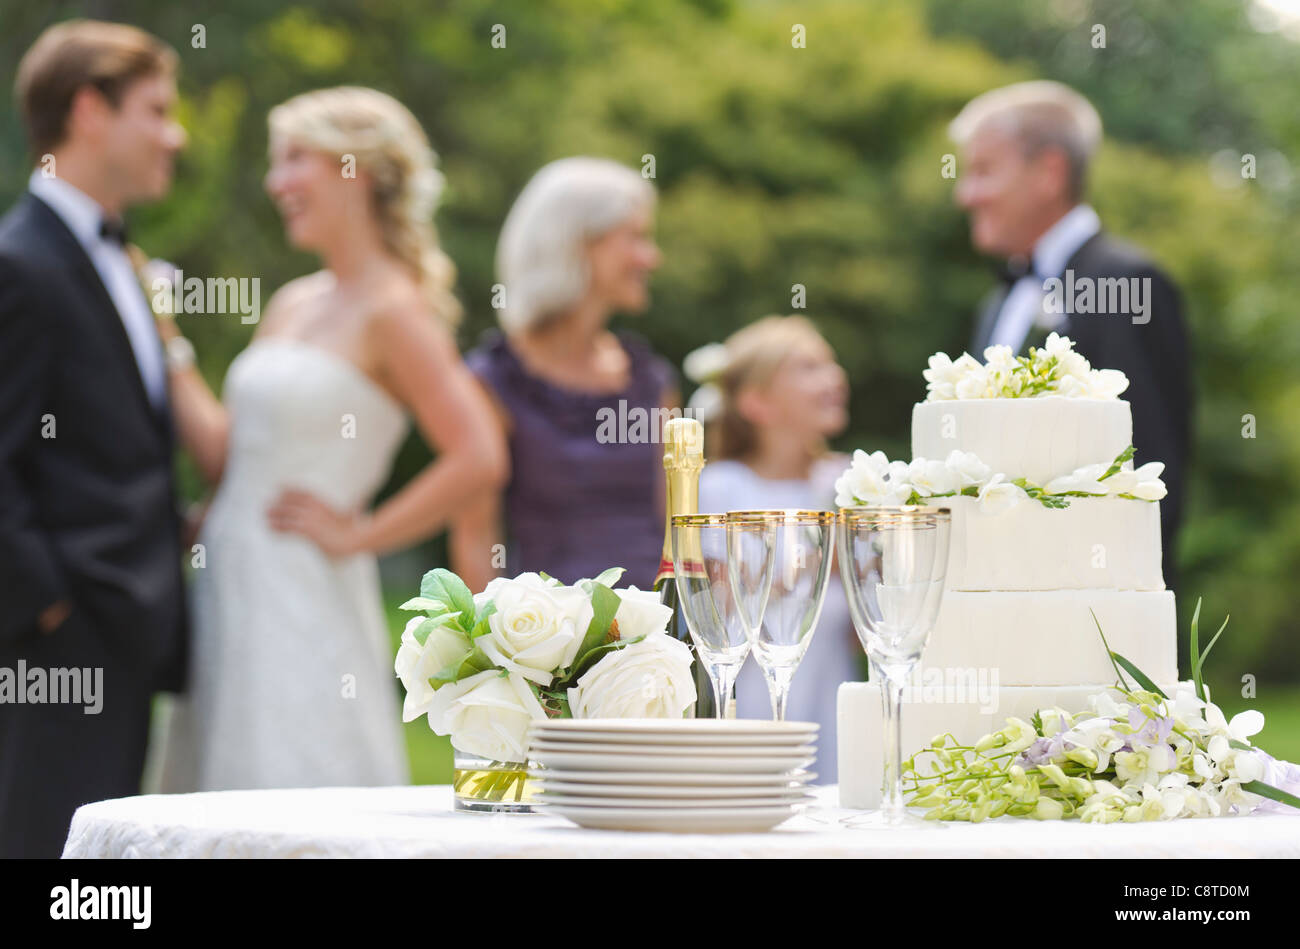 USA, New York State, Old Westbury, Wedding table with champagne and cake, people in background - Stock Image